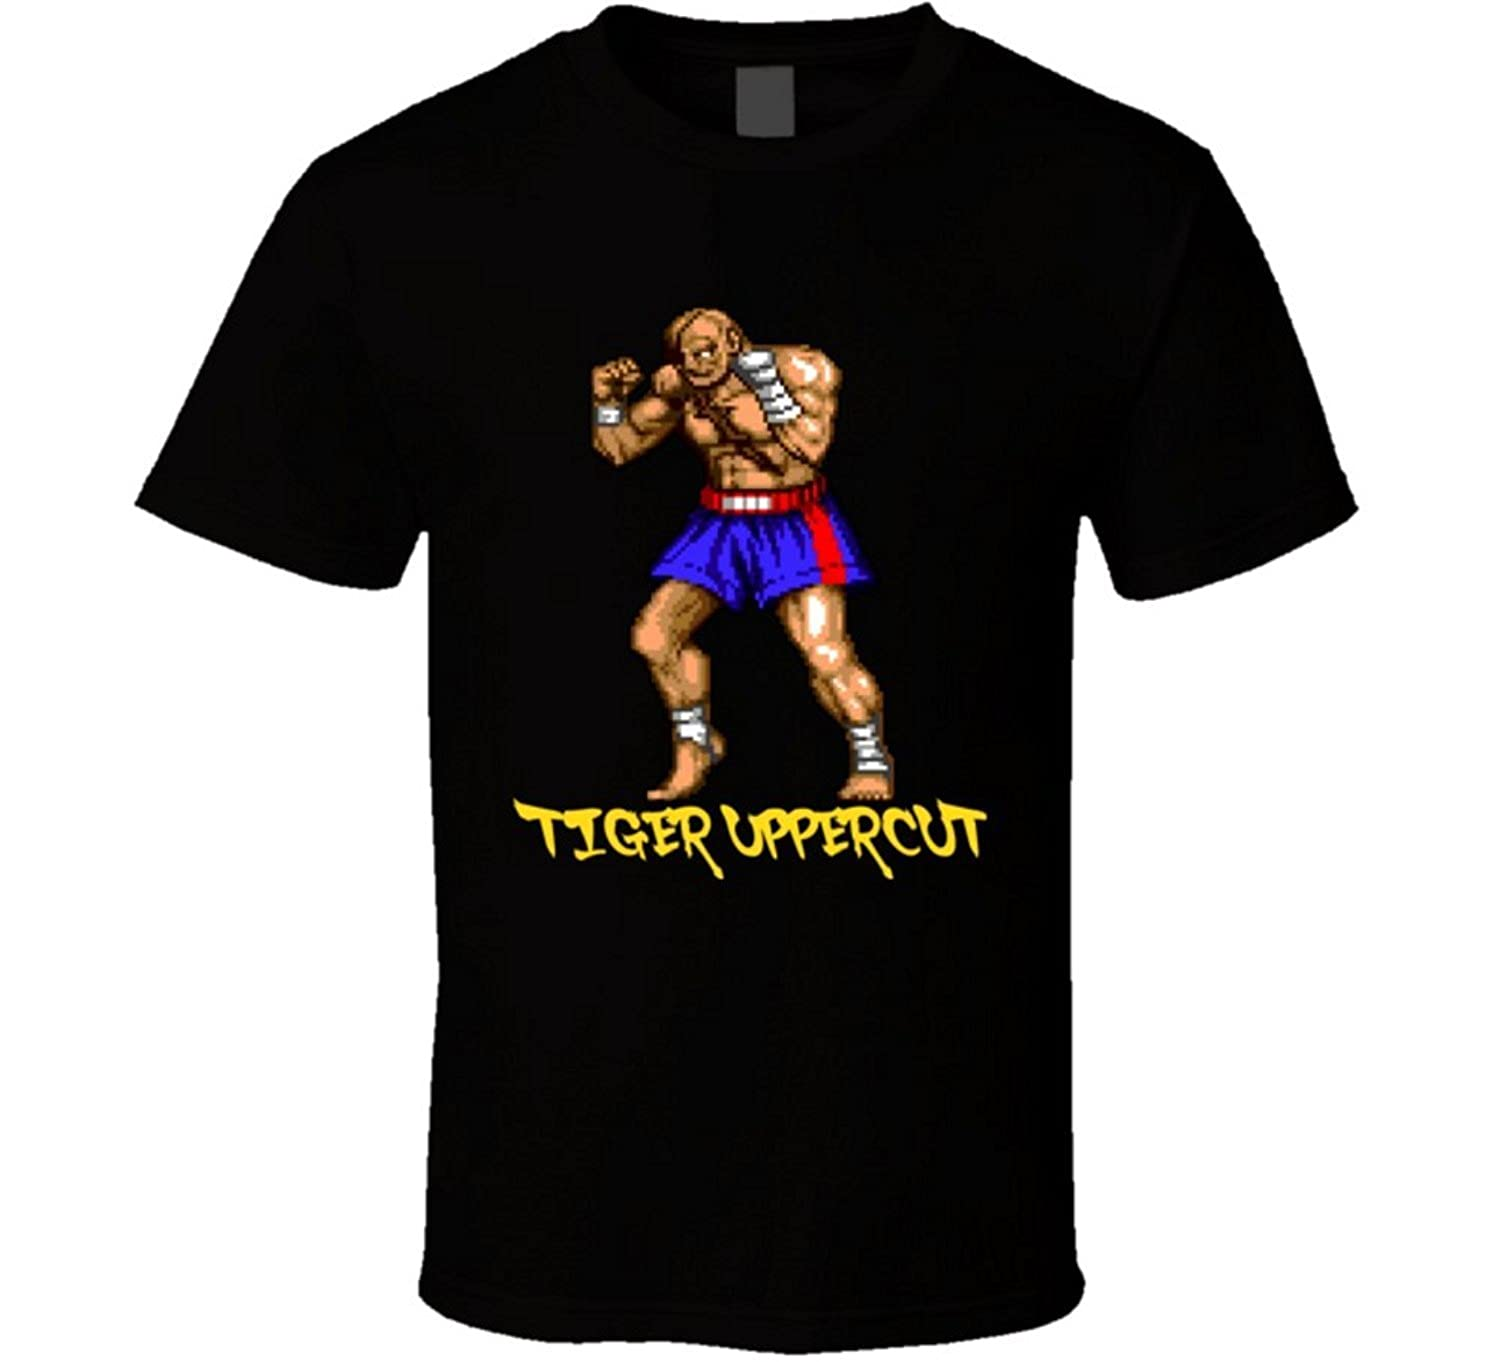 The Ice man T-Shirt Bandit Sagat Street Fighter Video Game Classic T Shirt Black